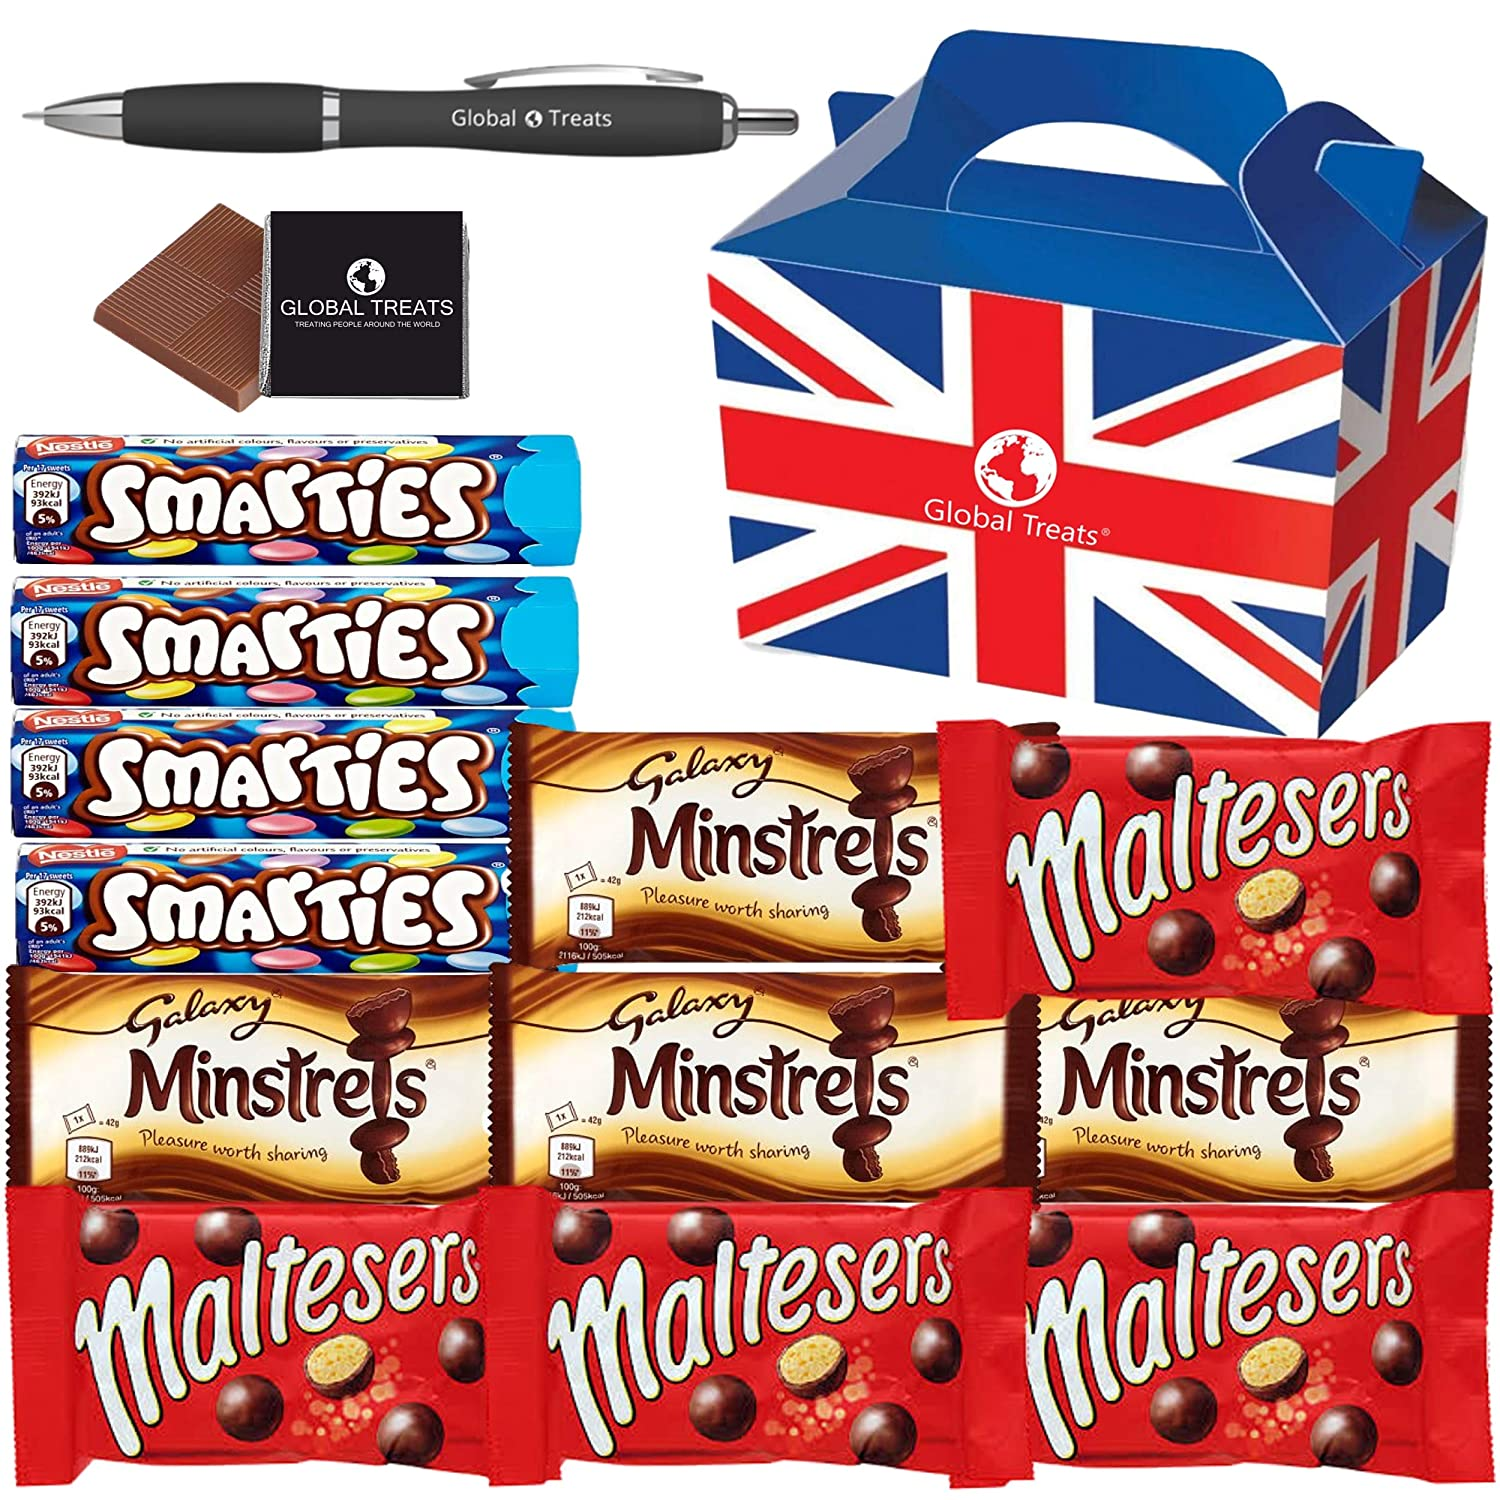 British Chocolate Favourite Selection - Smarties Hexatube x4. Maltesers x4, Galaxy Minstrels x4, - 12 FULL SIZE Chocolate Candy in a unique Gift Box and a free Global Treats Choc & Pen